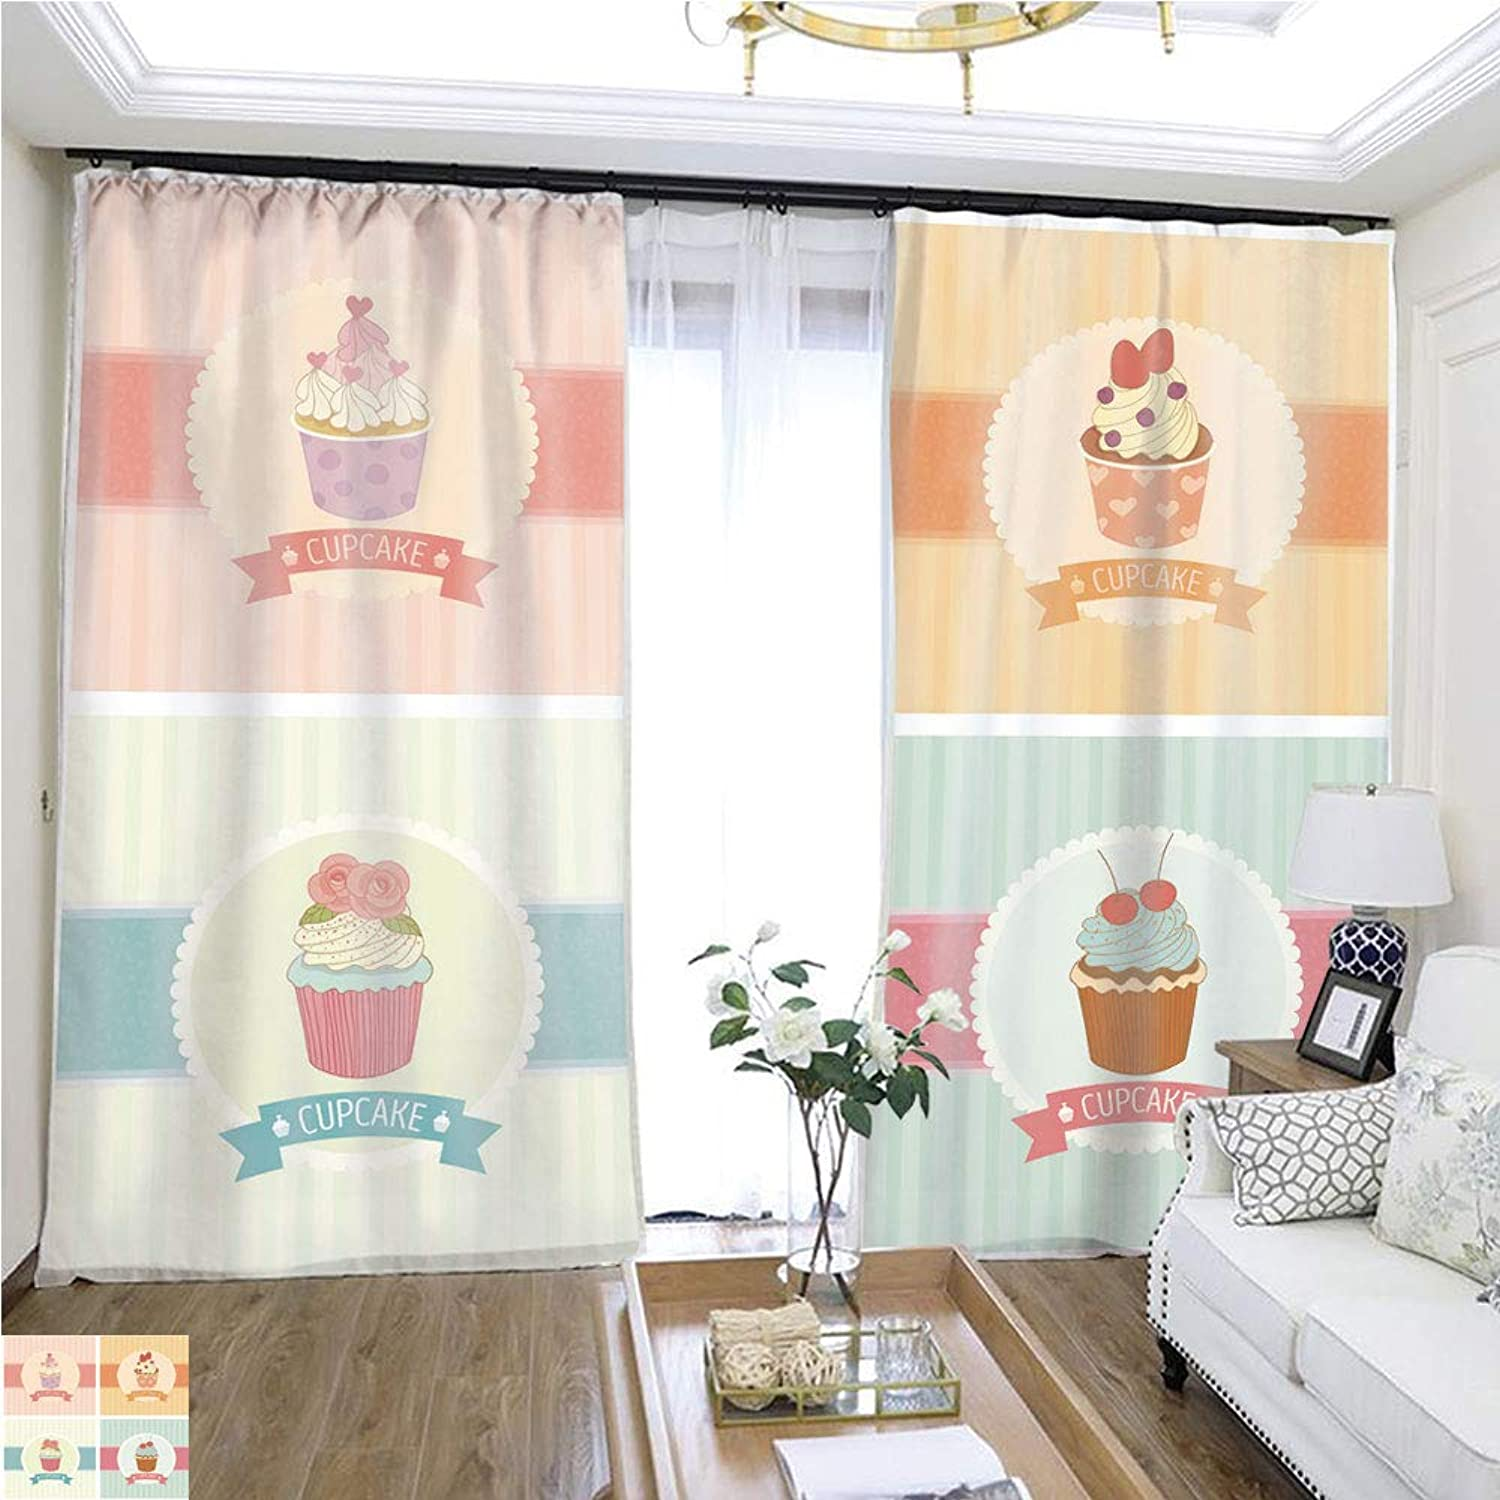 Air Port Screen cupcake9 W108 x L82 Provide Heat Highprecision Curtains for bedrooms Living Rooms Kitchens etc.